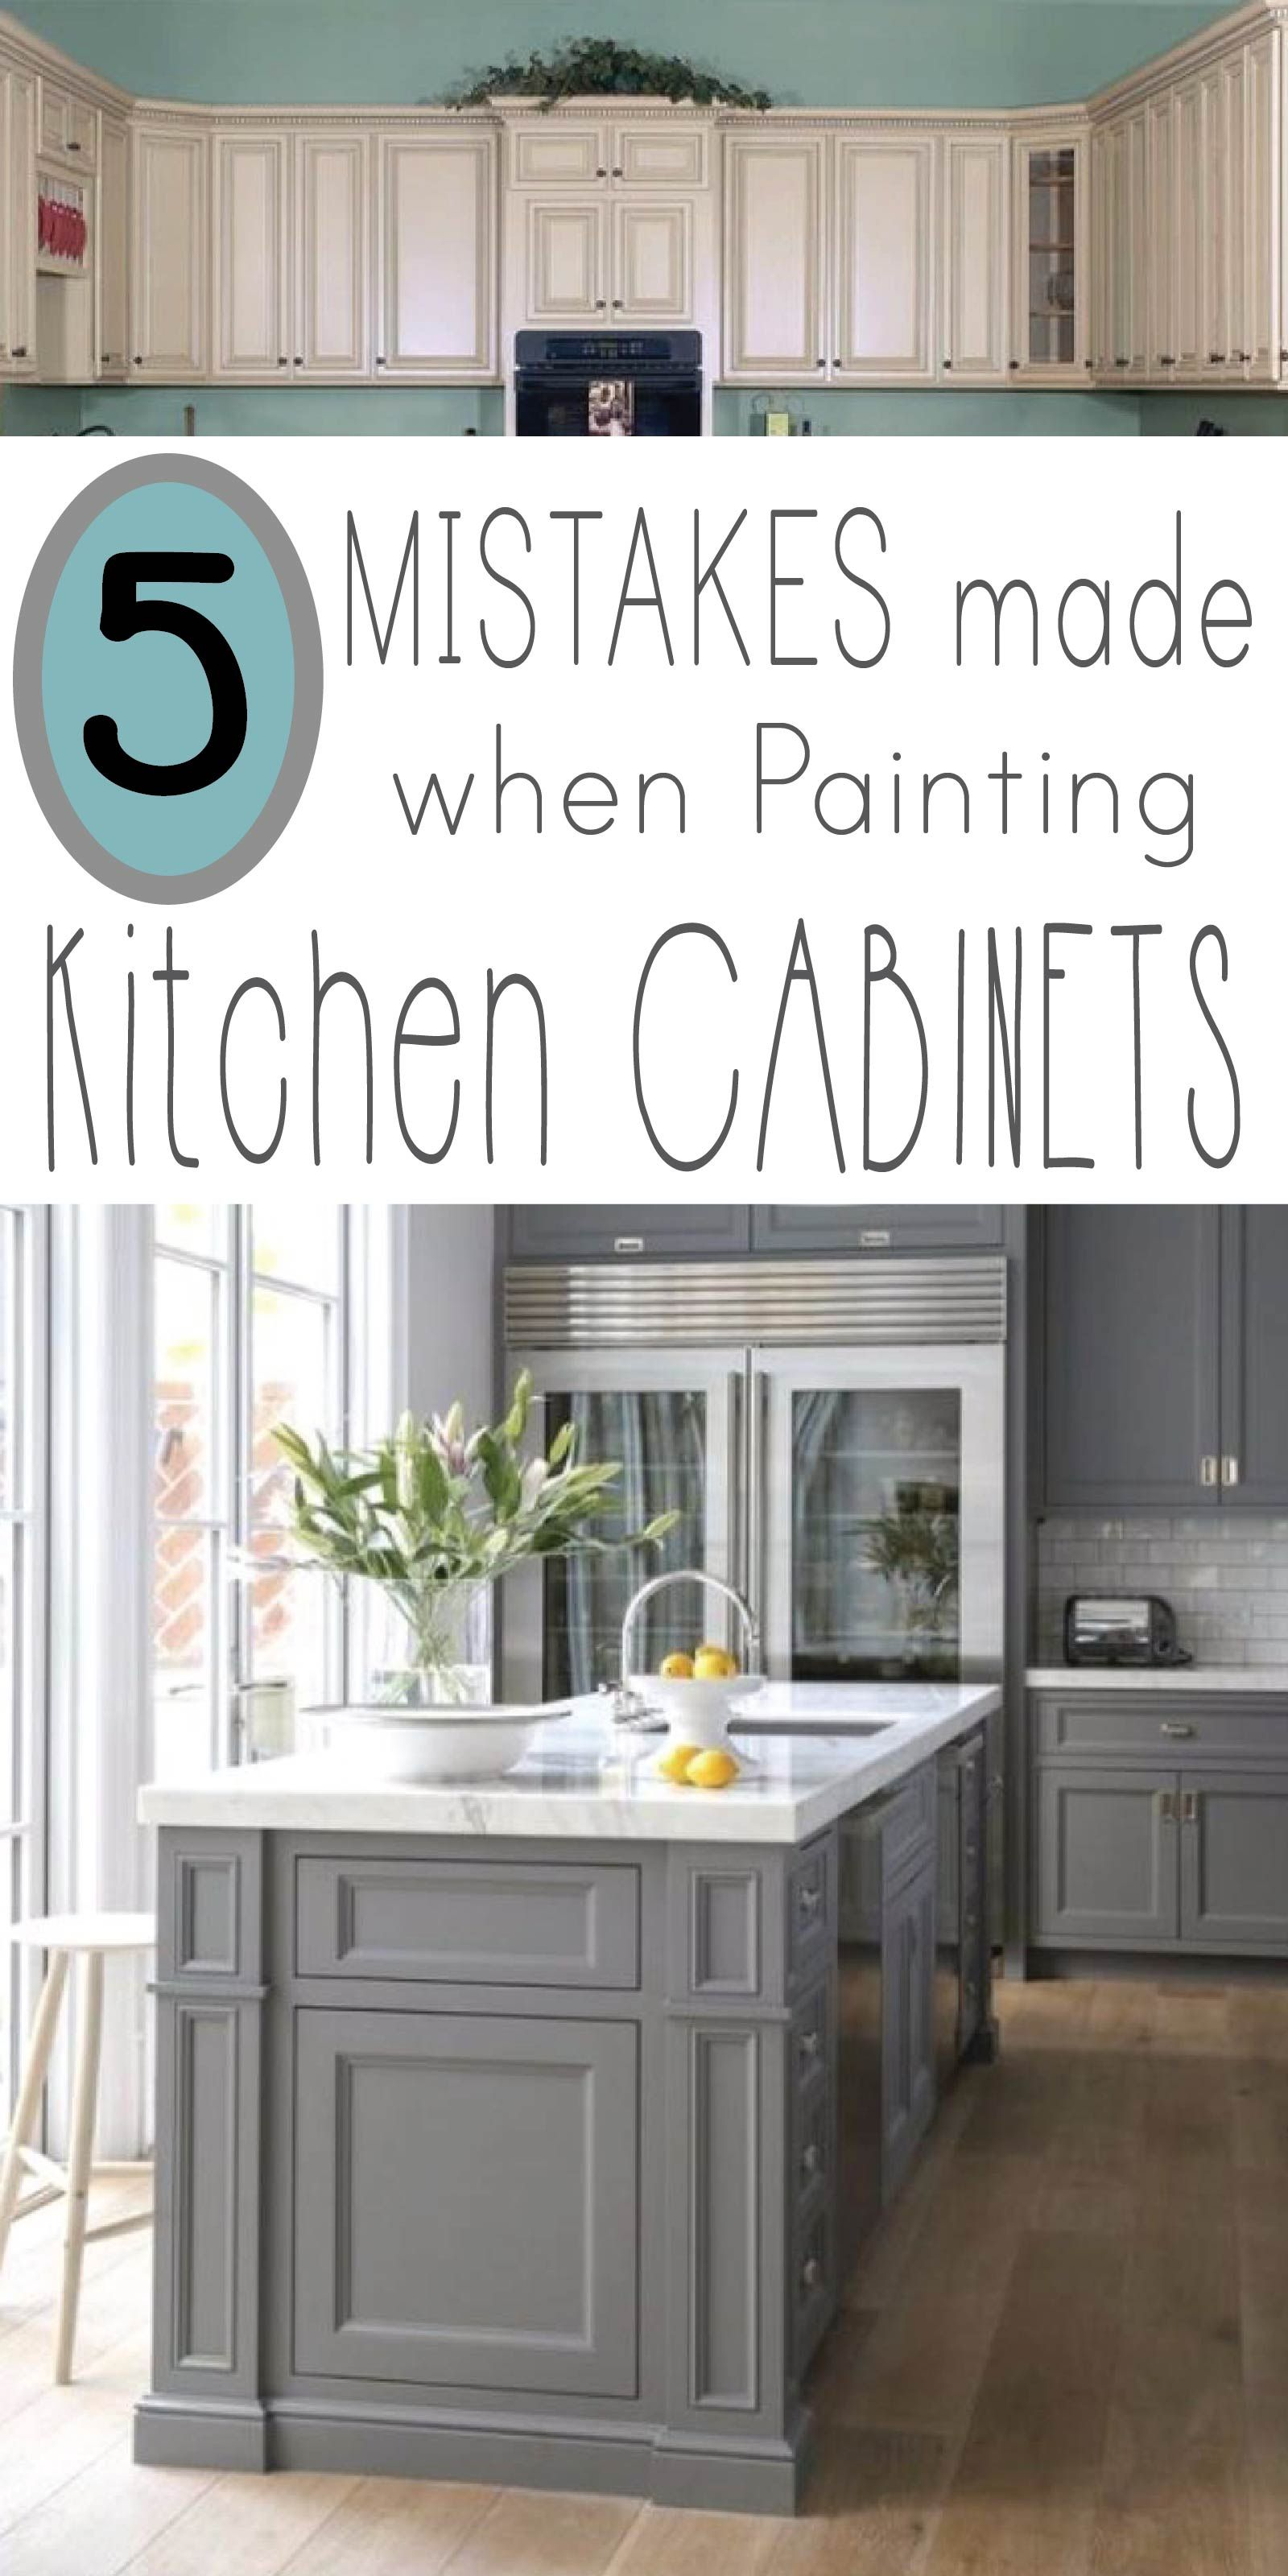 5 mistakes people make when painting kitchen cabinets | house